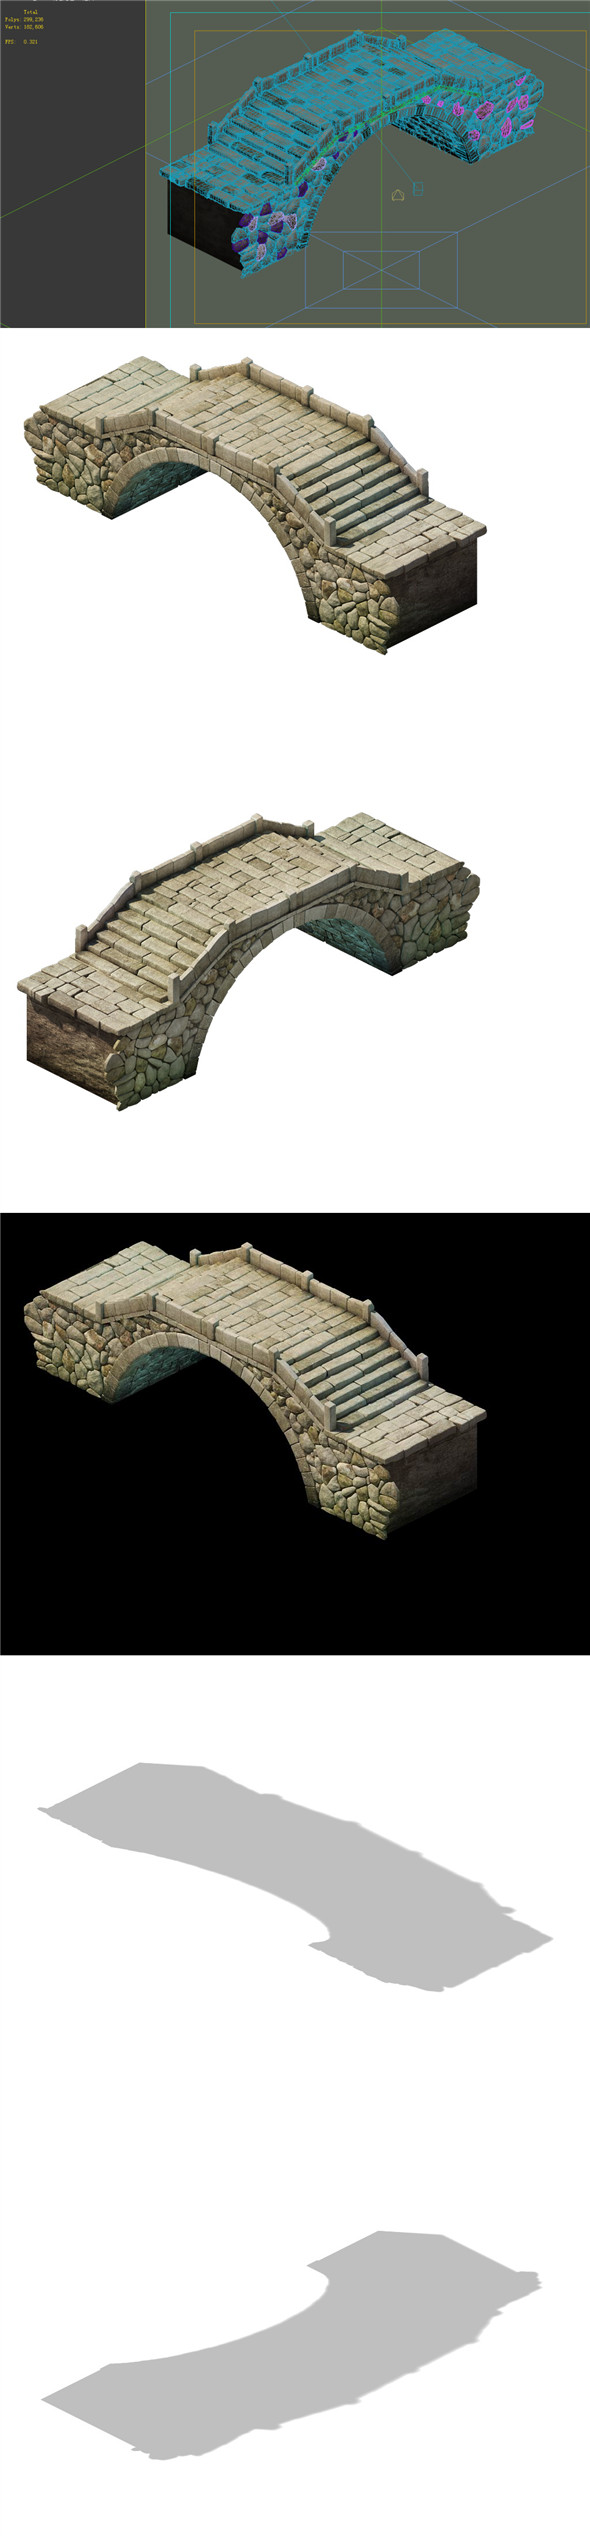 Game Model - prairie scene - Stone Bridge 01 - 3DOcean Item for Sale